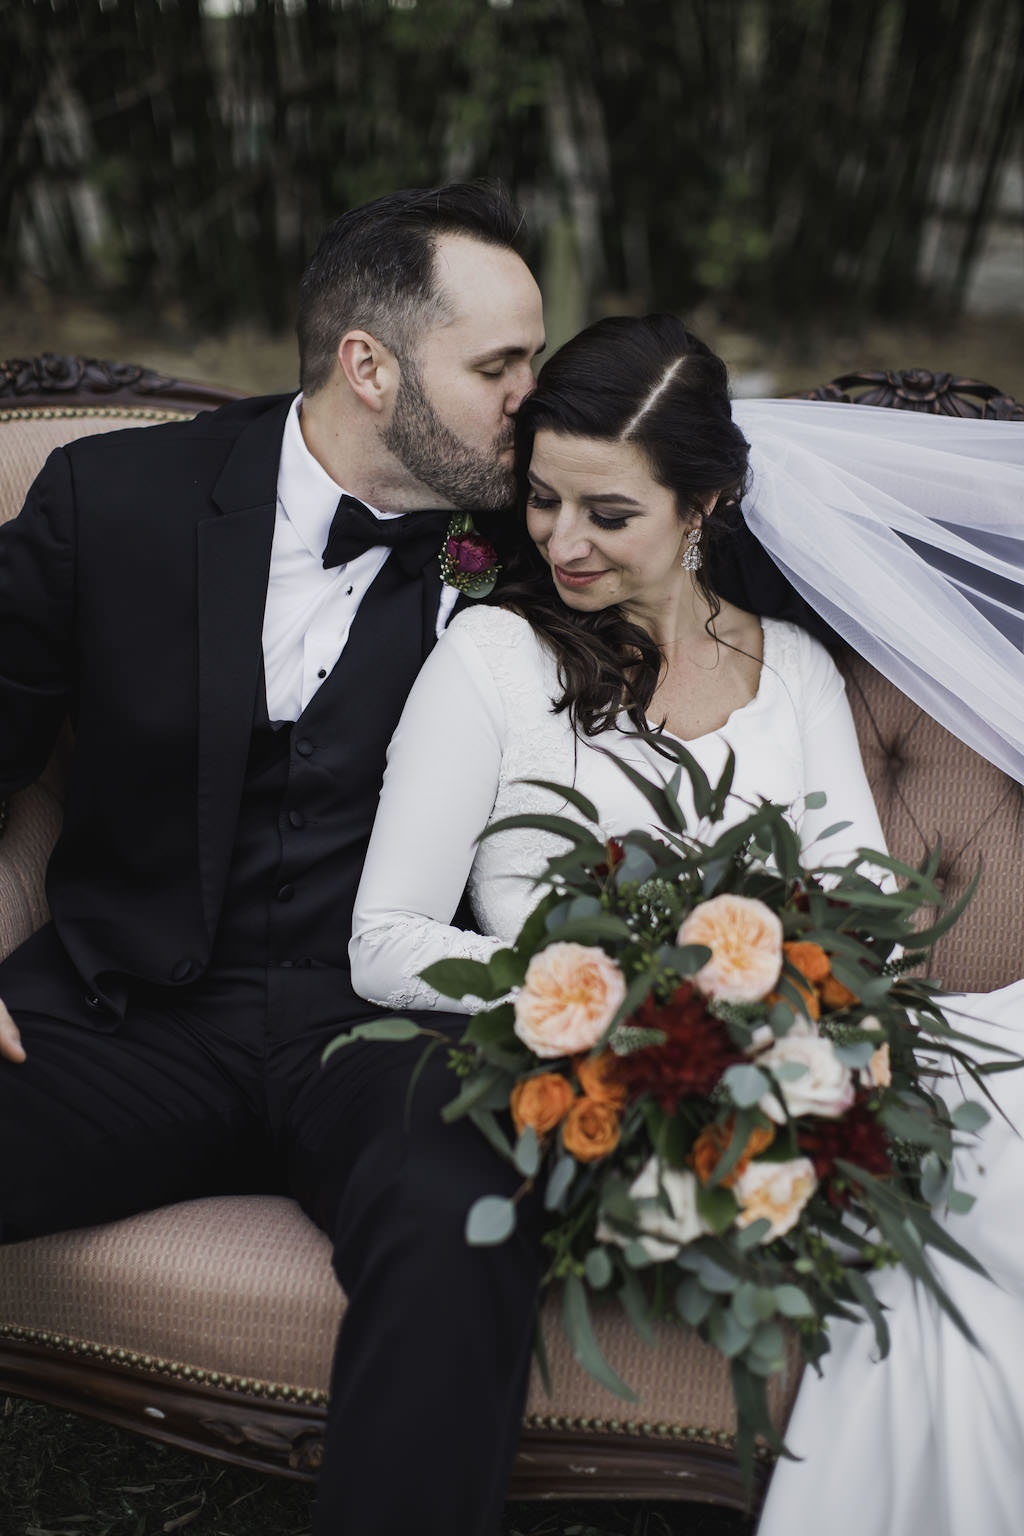 Outdoor Florida Bride and Groom Wedding Portrait on Blush Pink Vintage Loveseat Couch, Bride in Crepe and Lace Long Sleeve V Neckline Mermaid Wedding Dress with Cathedral Veil with Greenery, Blush Pink, Orange, and Red Floral Bouquet, Groom in Black Tuxedo